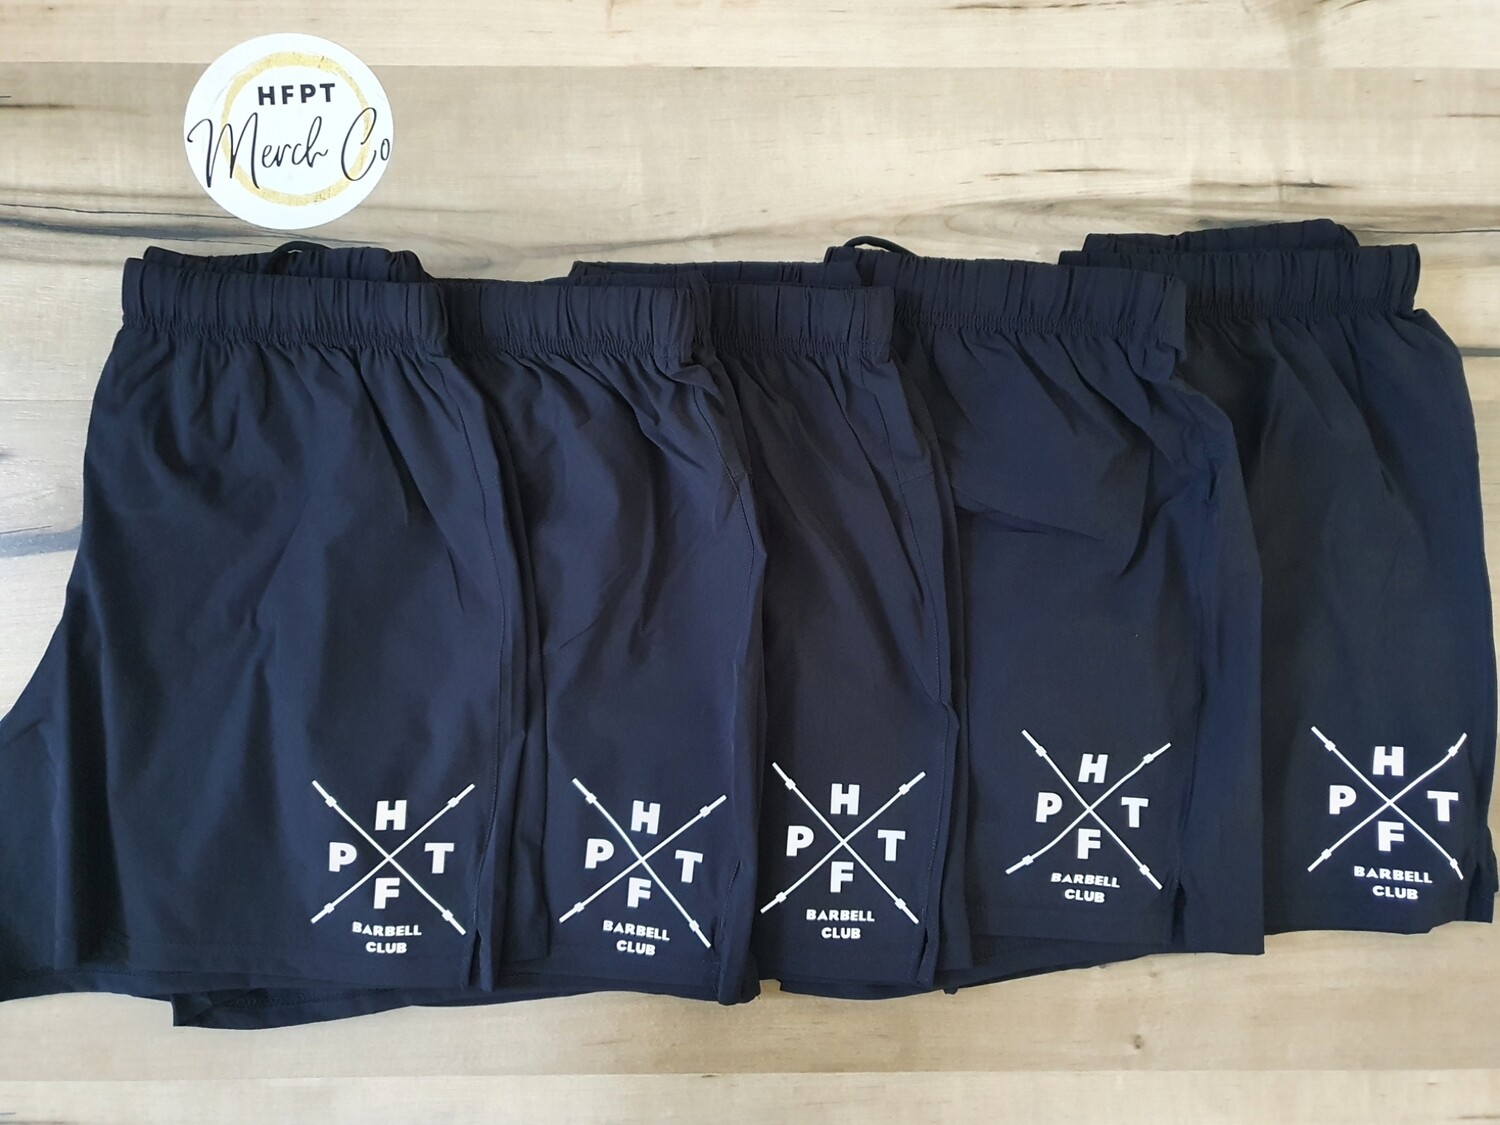 HFPT Barbell Shorts